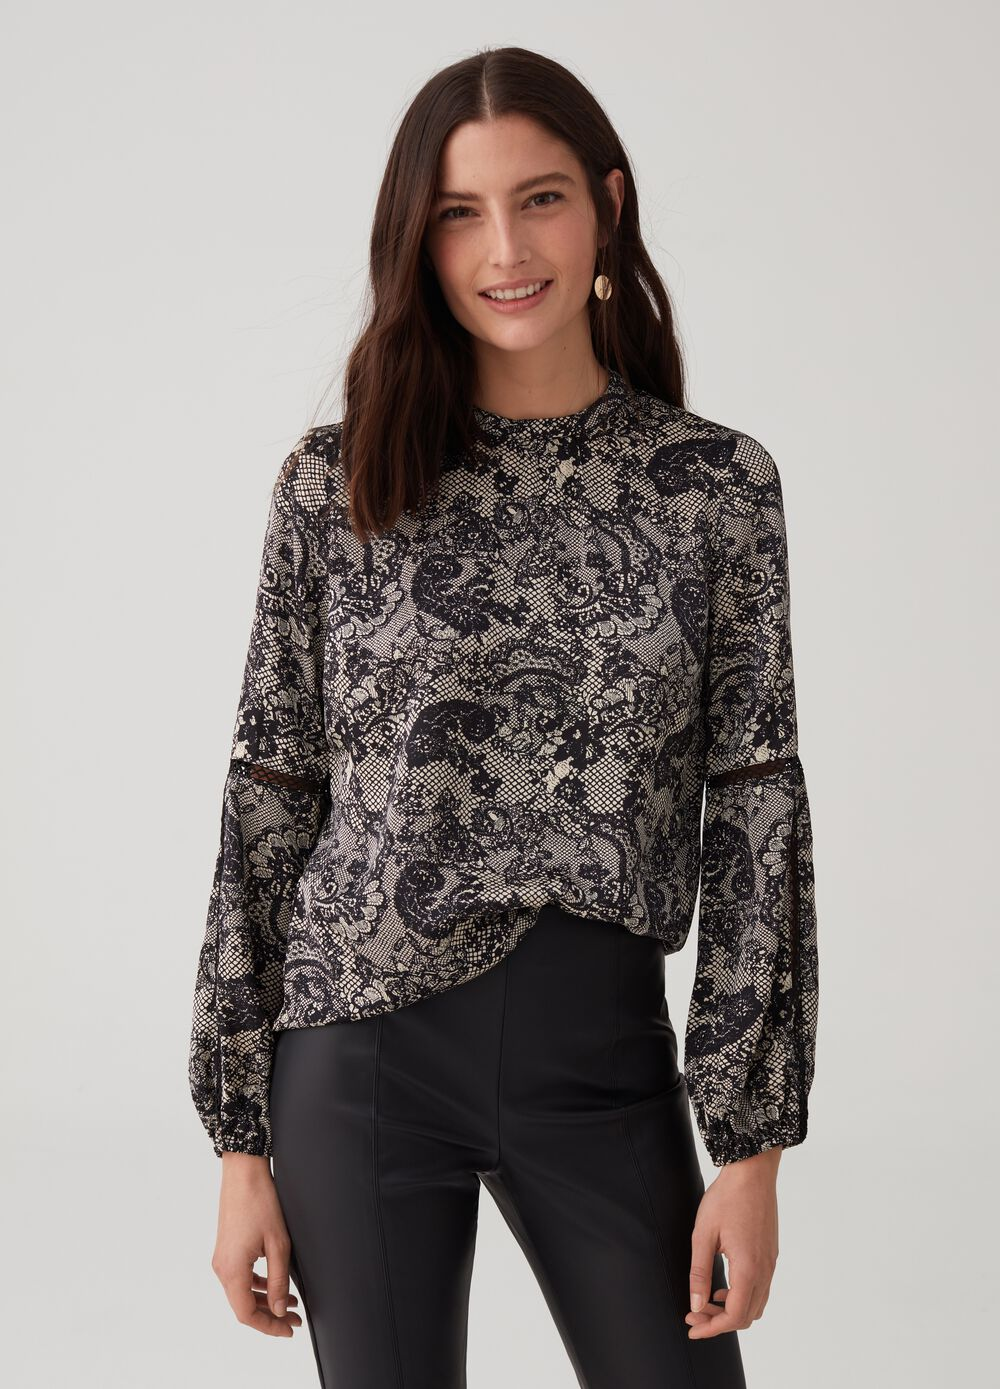 Long-sleeved blouse with lace pattern